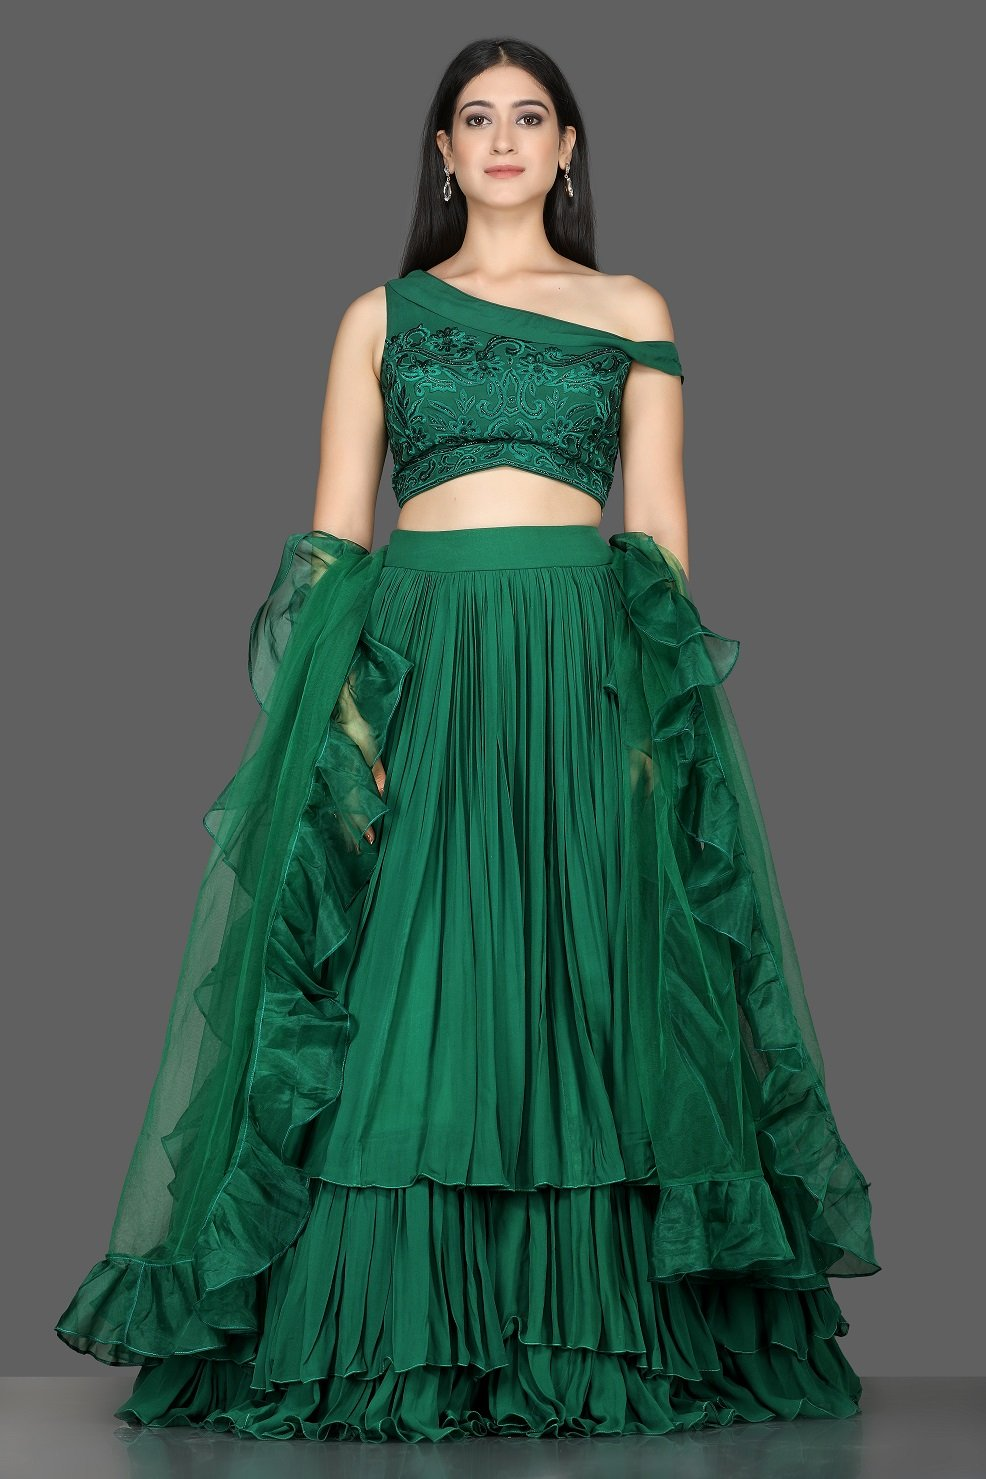 Buy stylish bottle green georgette layered lehenga online in USA with ruffle dupatta. Flaunt ethnic fashion with exquisite designer lehenga, Indian wedding dresses from Pure Elegance Indian fashion boutique in USA.-full view